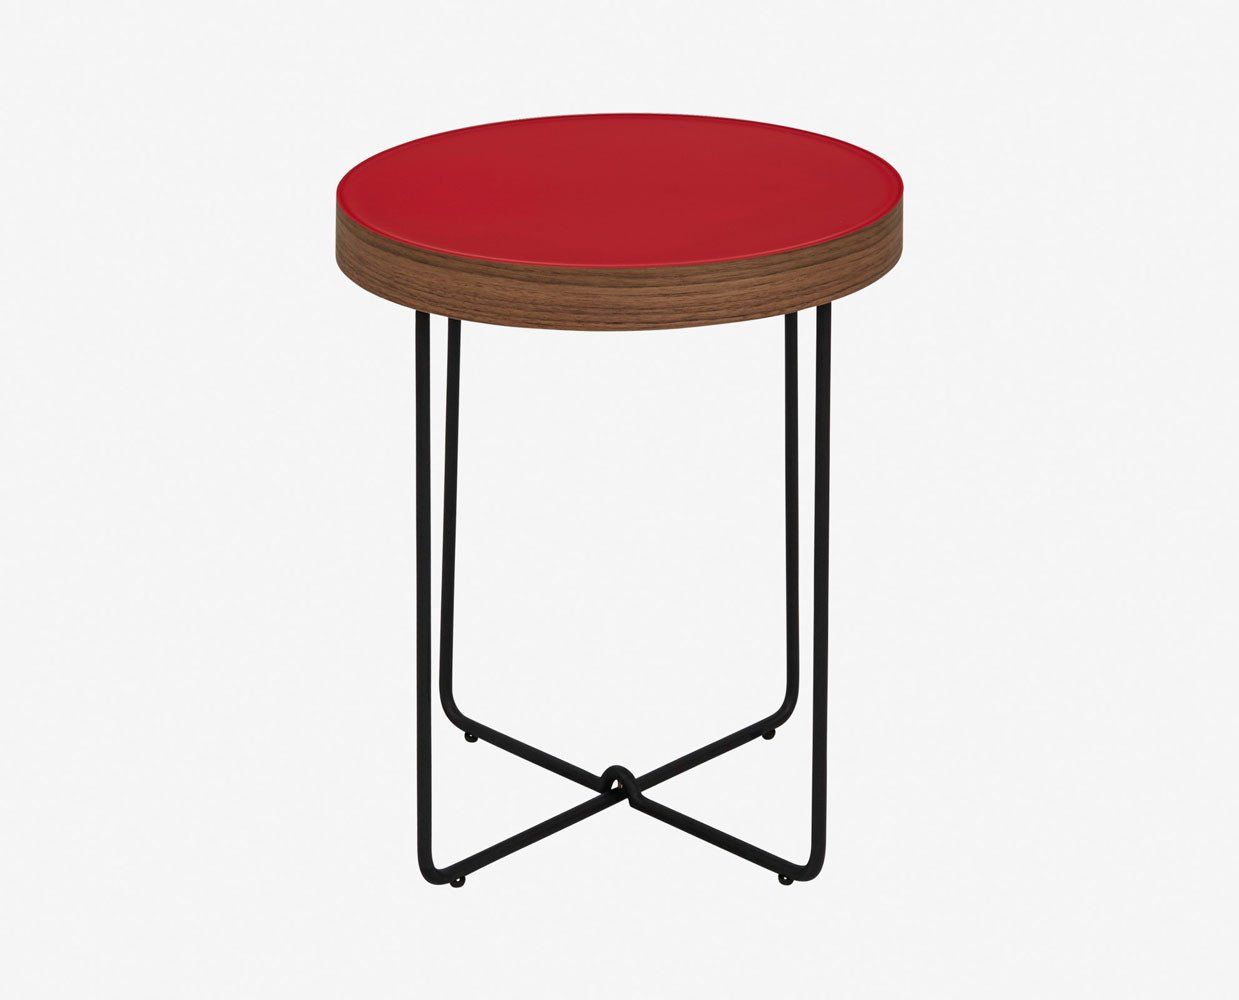 modern accent tables scandis table red pavlo end marble desk acrylic side with shelf half moon glass round ikea wedding registry ideas vinyl floor threshold vintage oriental lamps